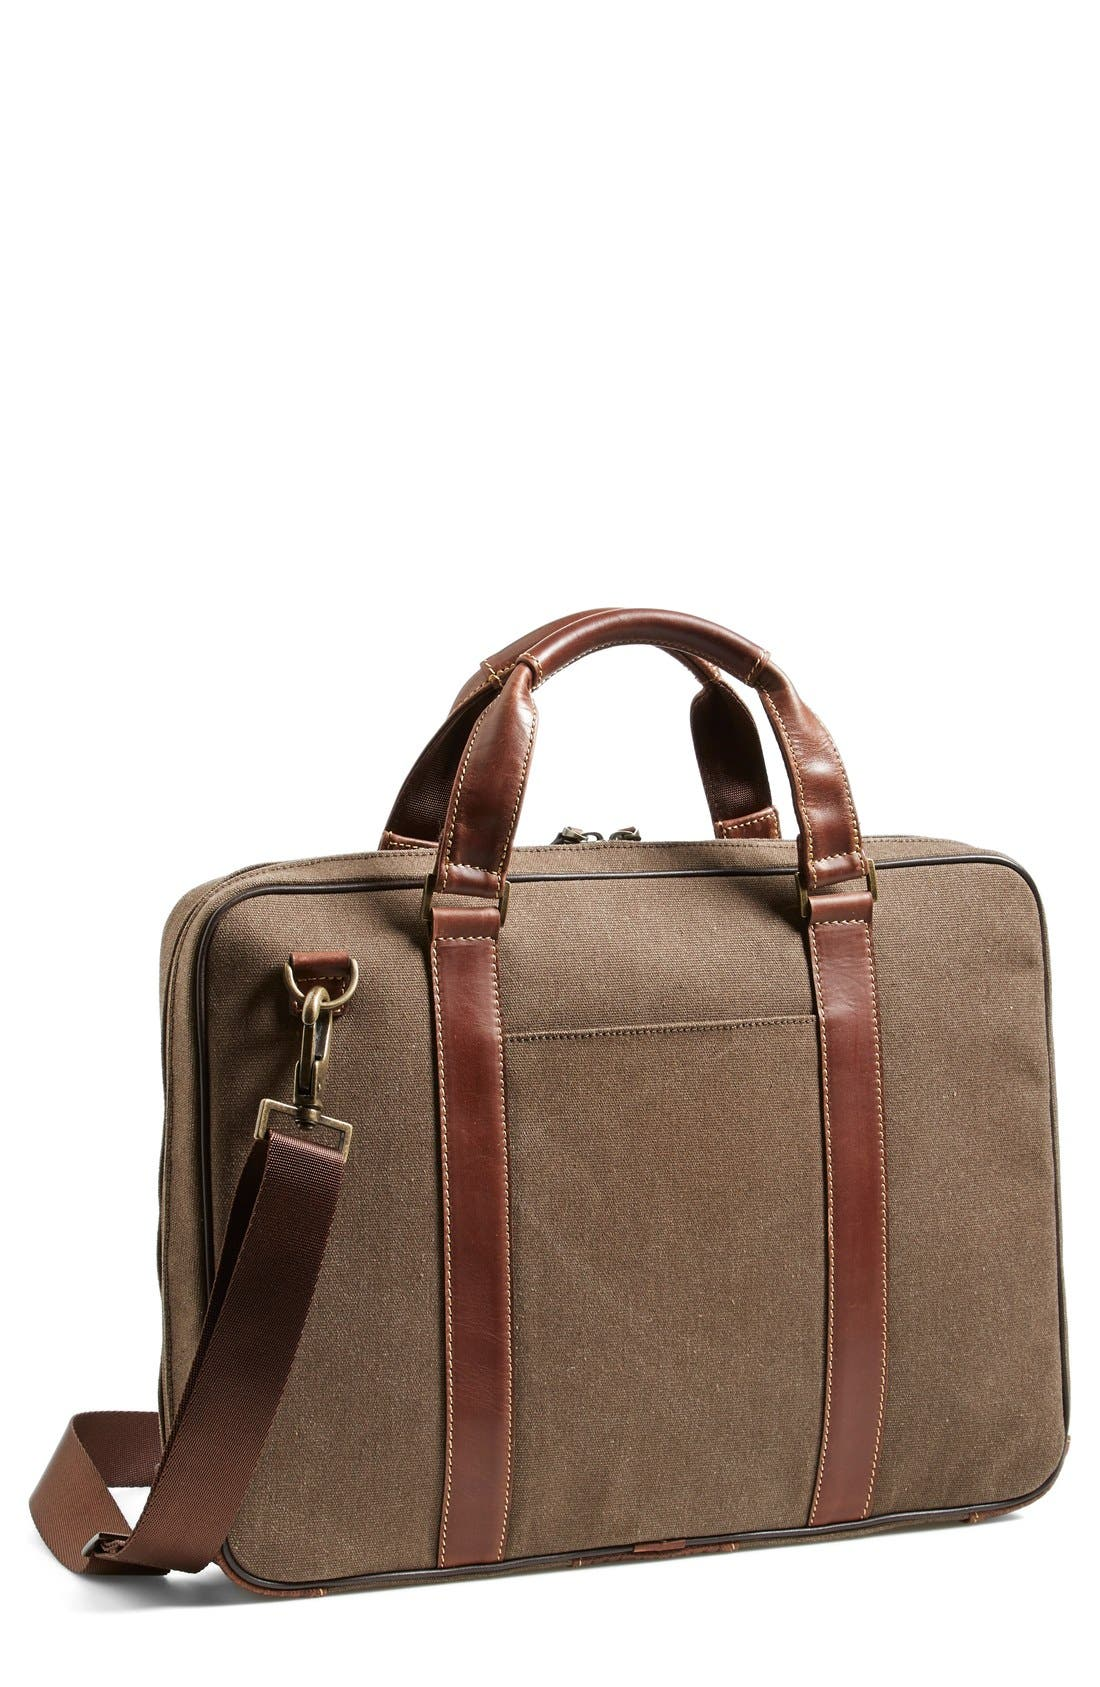 'Bryant' Briefcase,                             Main thumbnail 1, color,                             207